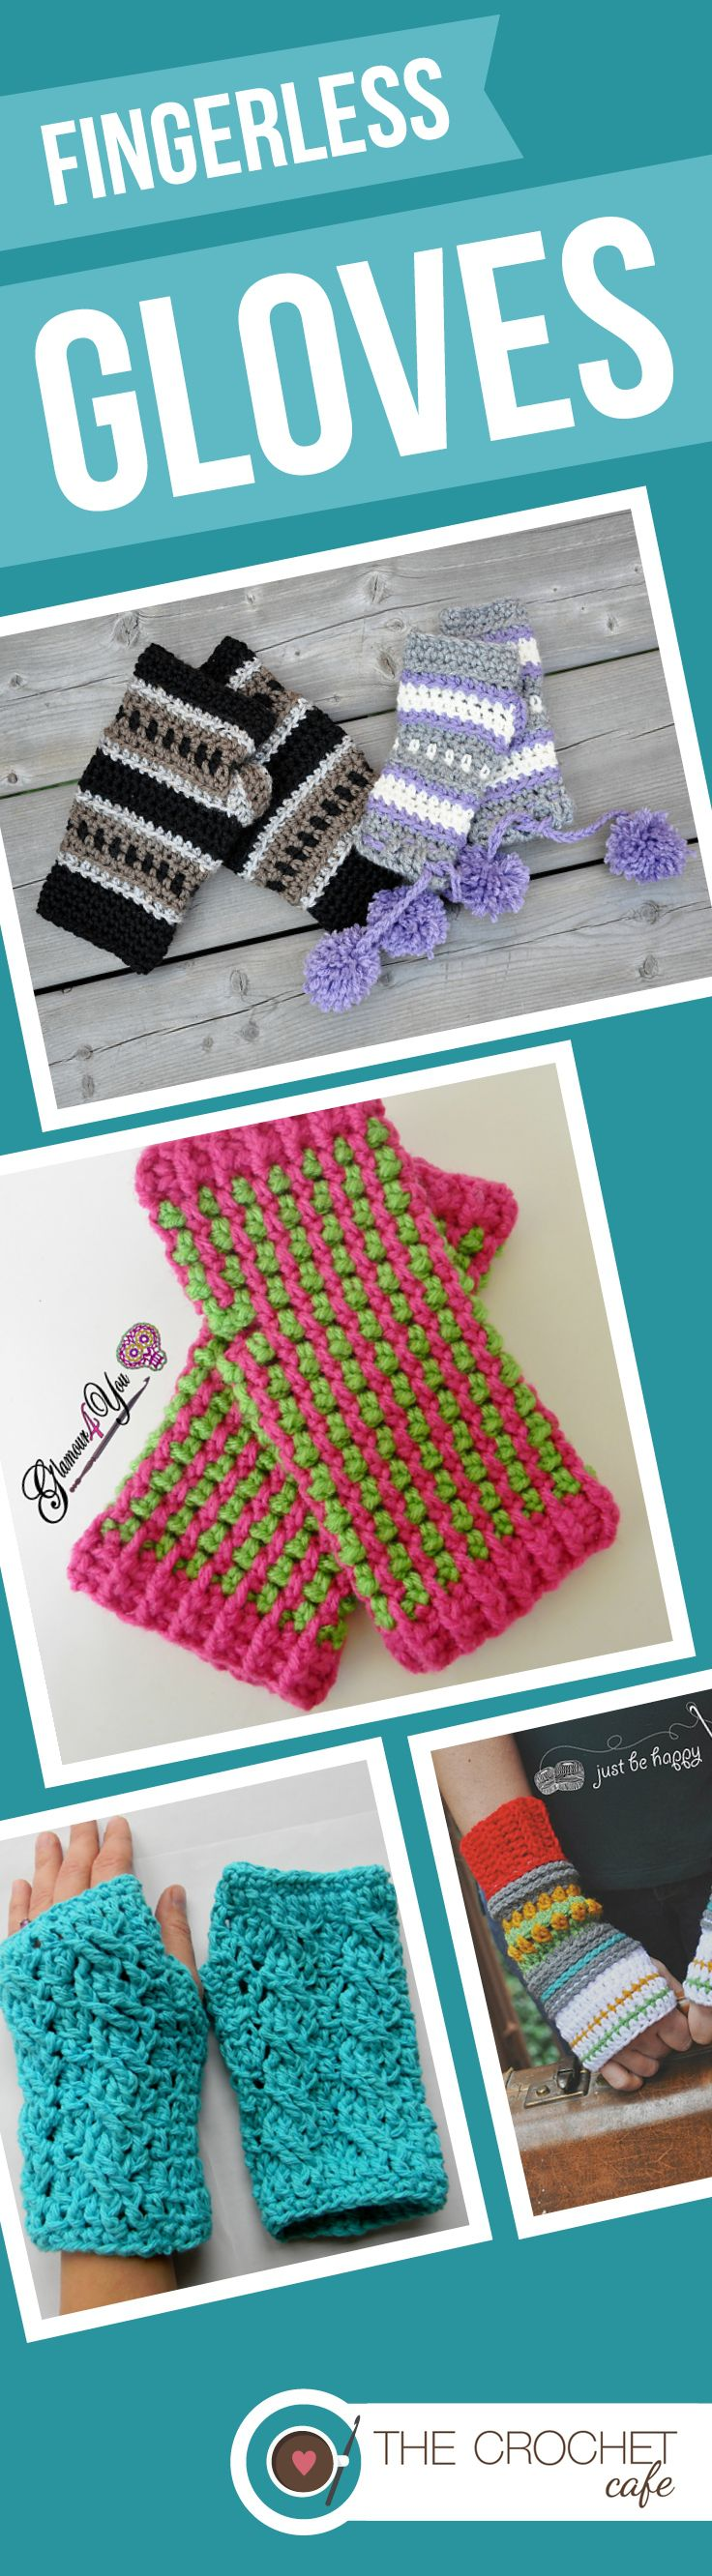 Must-Have crochet patterns for fingerless gloves and mitts from www.thecrochetcafe.com